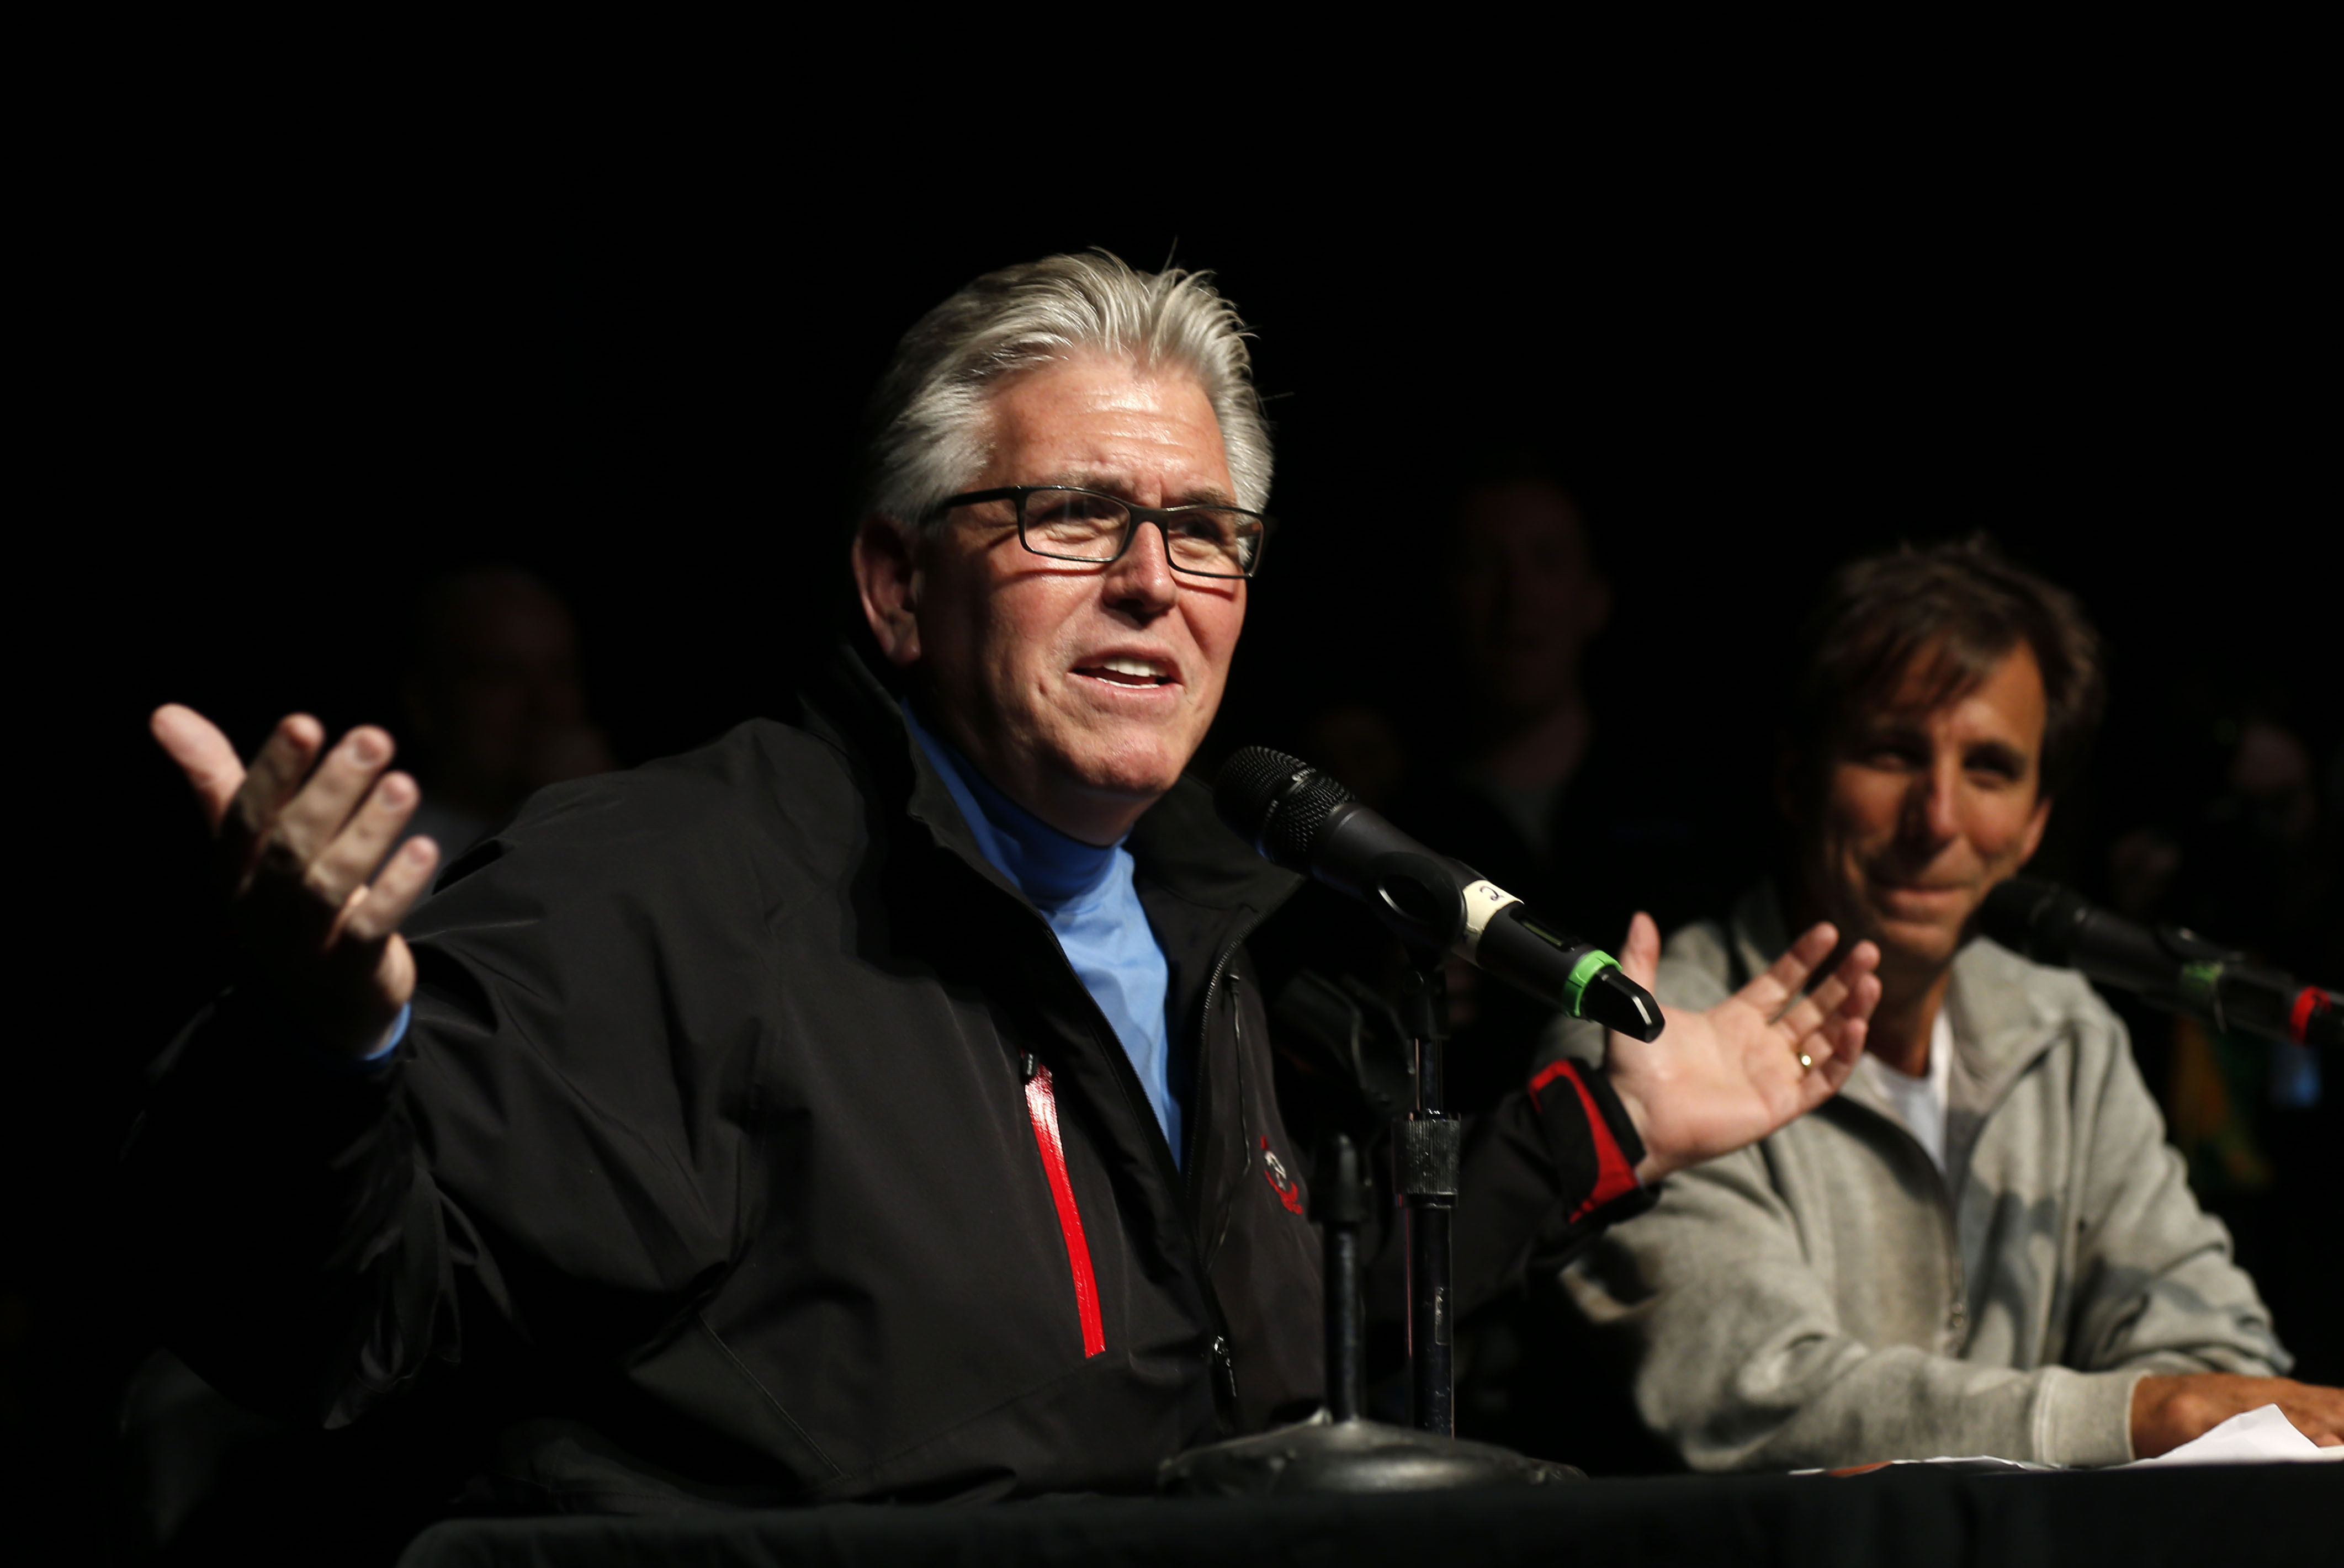 WFAN's Mike Francesa trashes 'career loser' Pat Shurmur and says Giants are 'complete losers' after 'sickening' loss to Cardinals